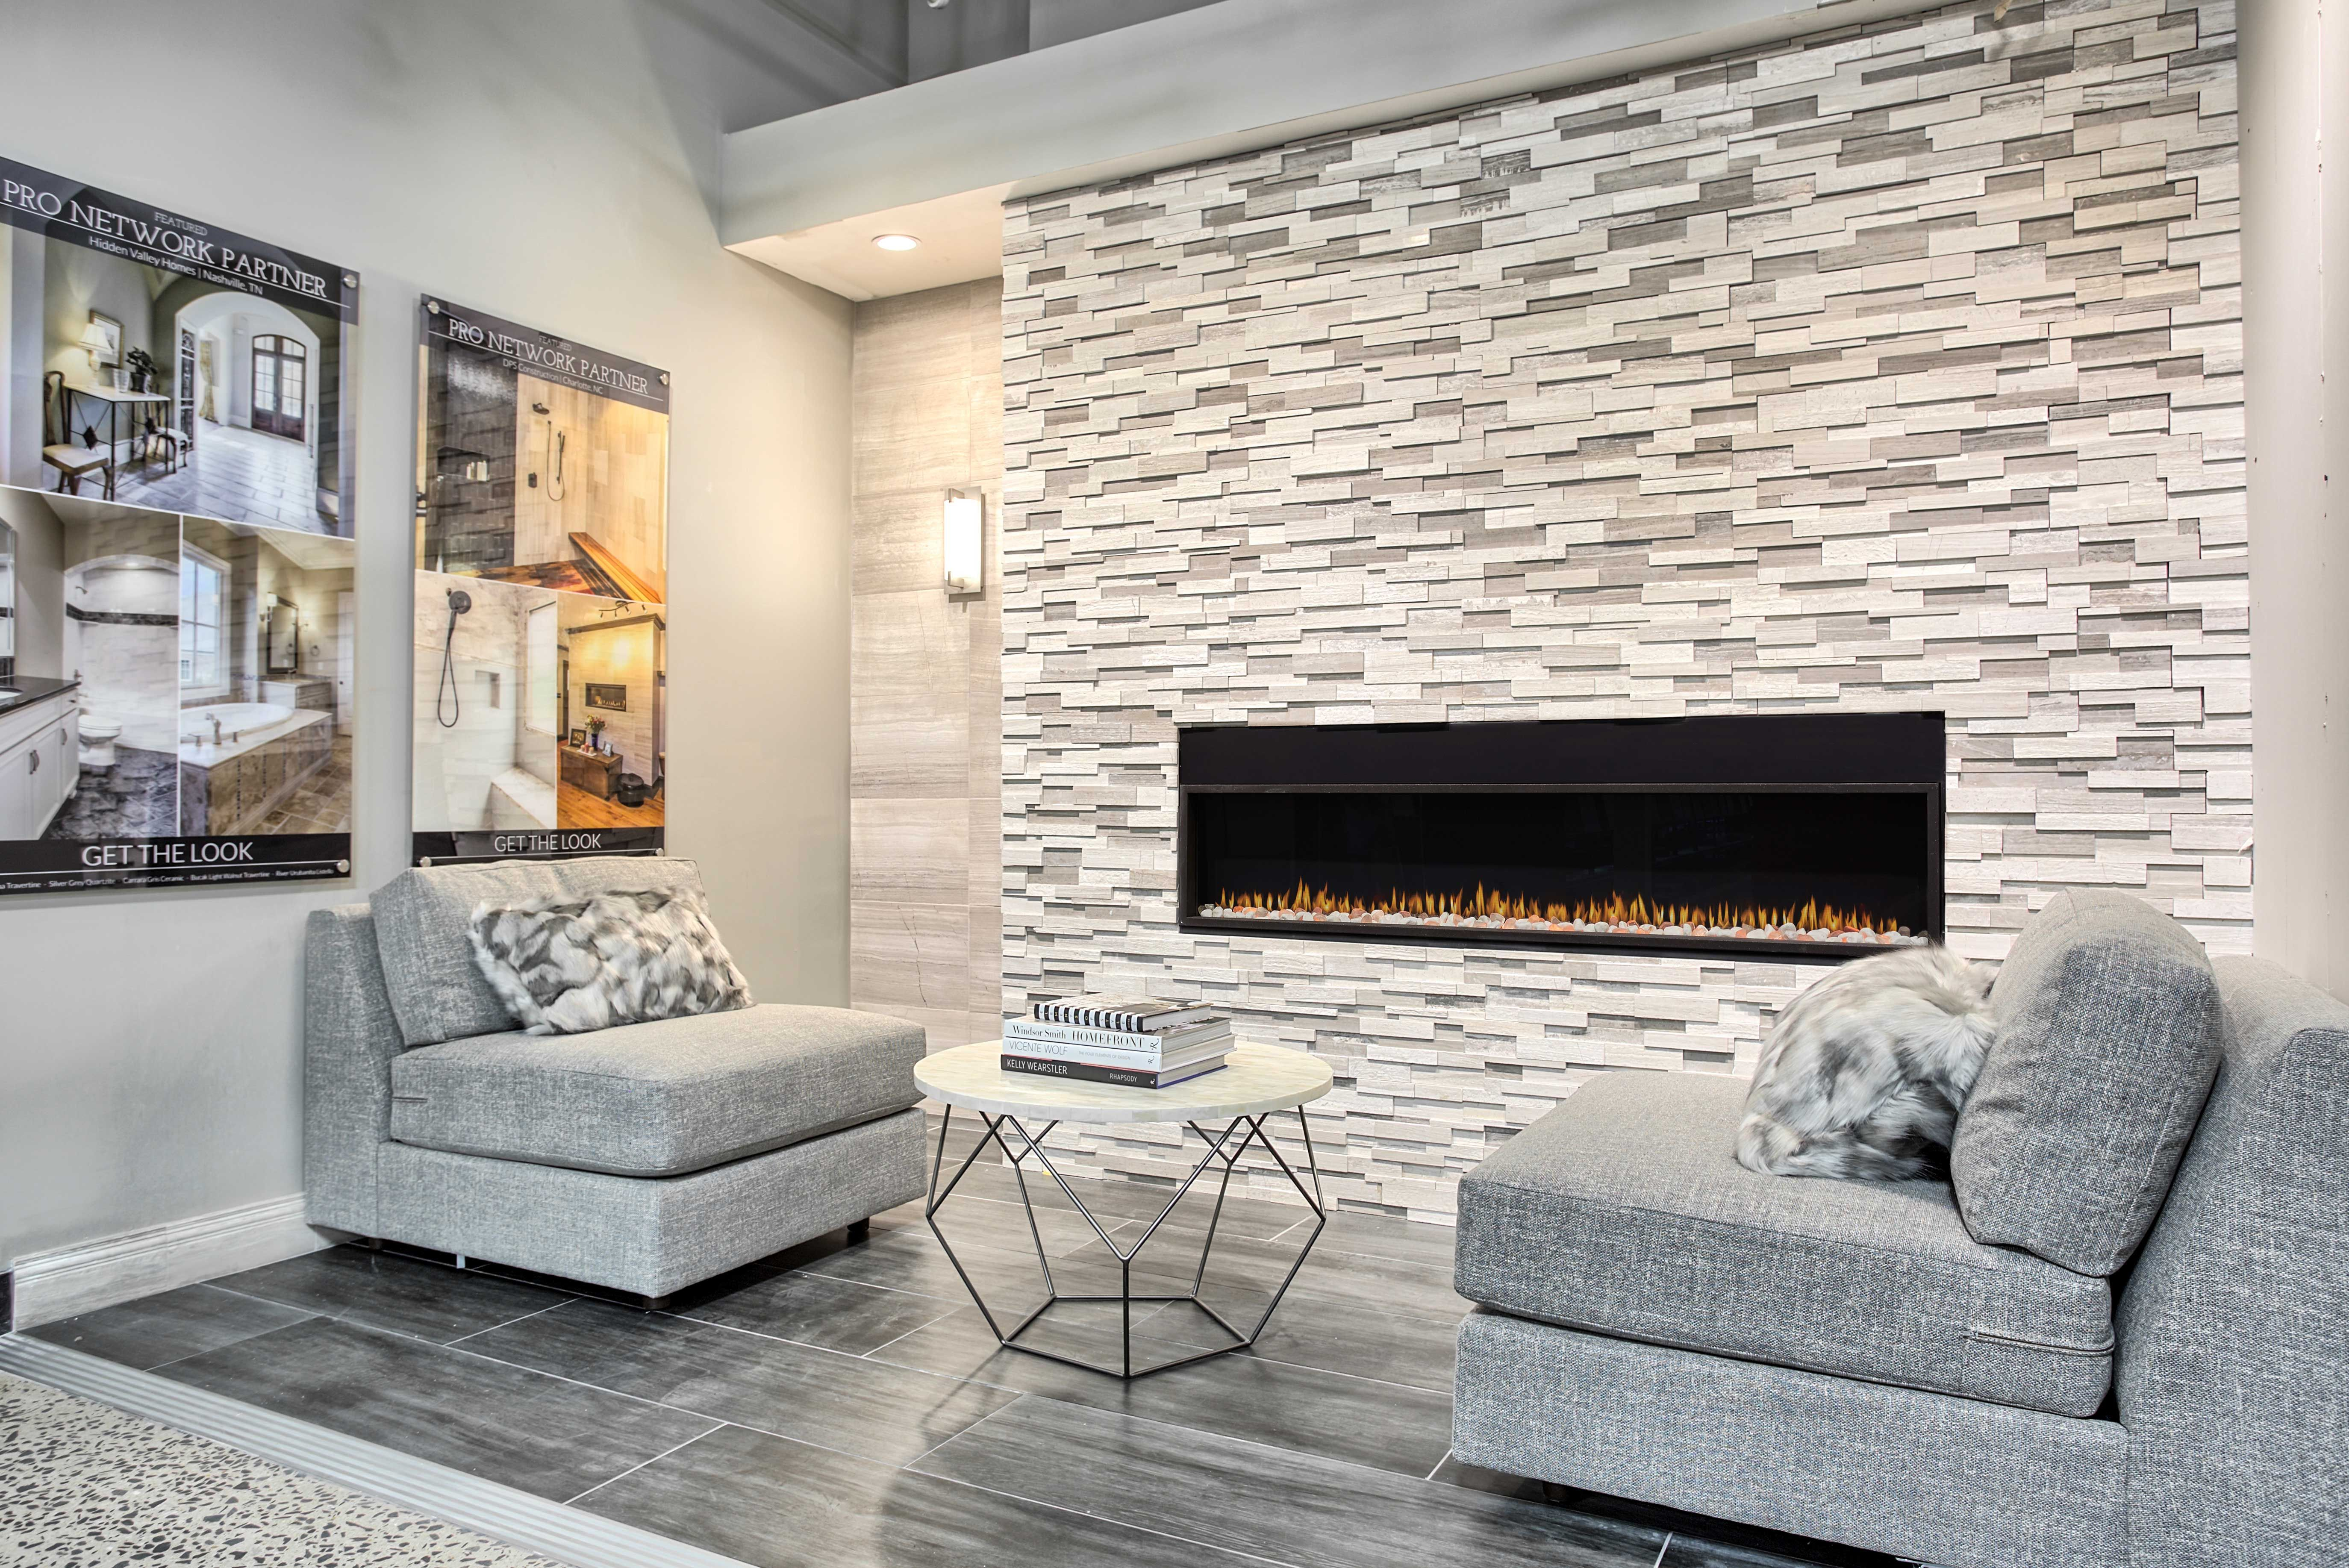 Fireplace Tile Legno Architectural Limestone Wall Tile Living